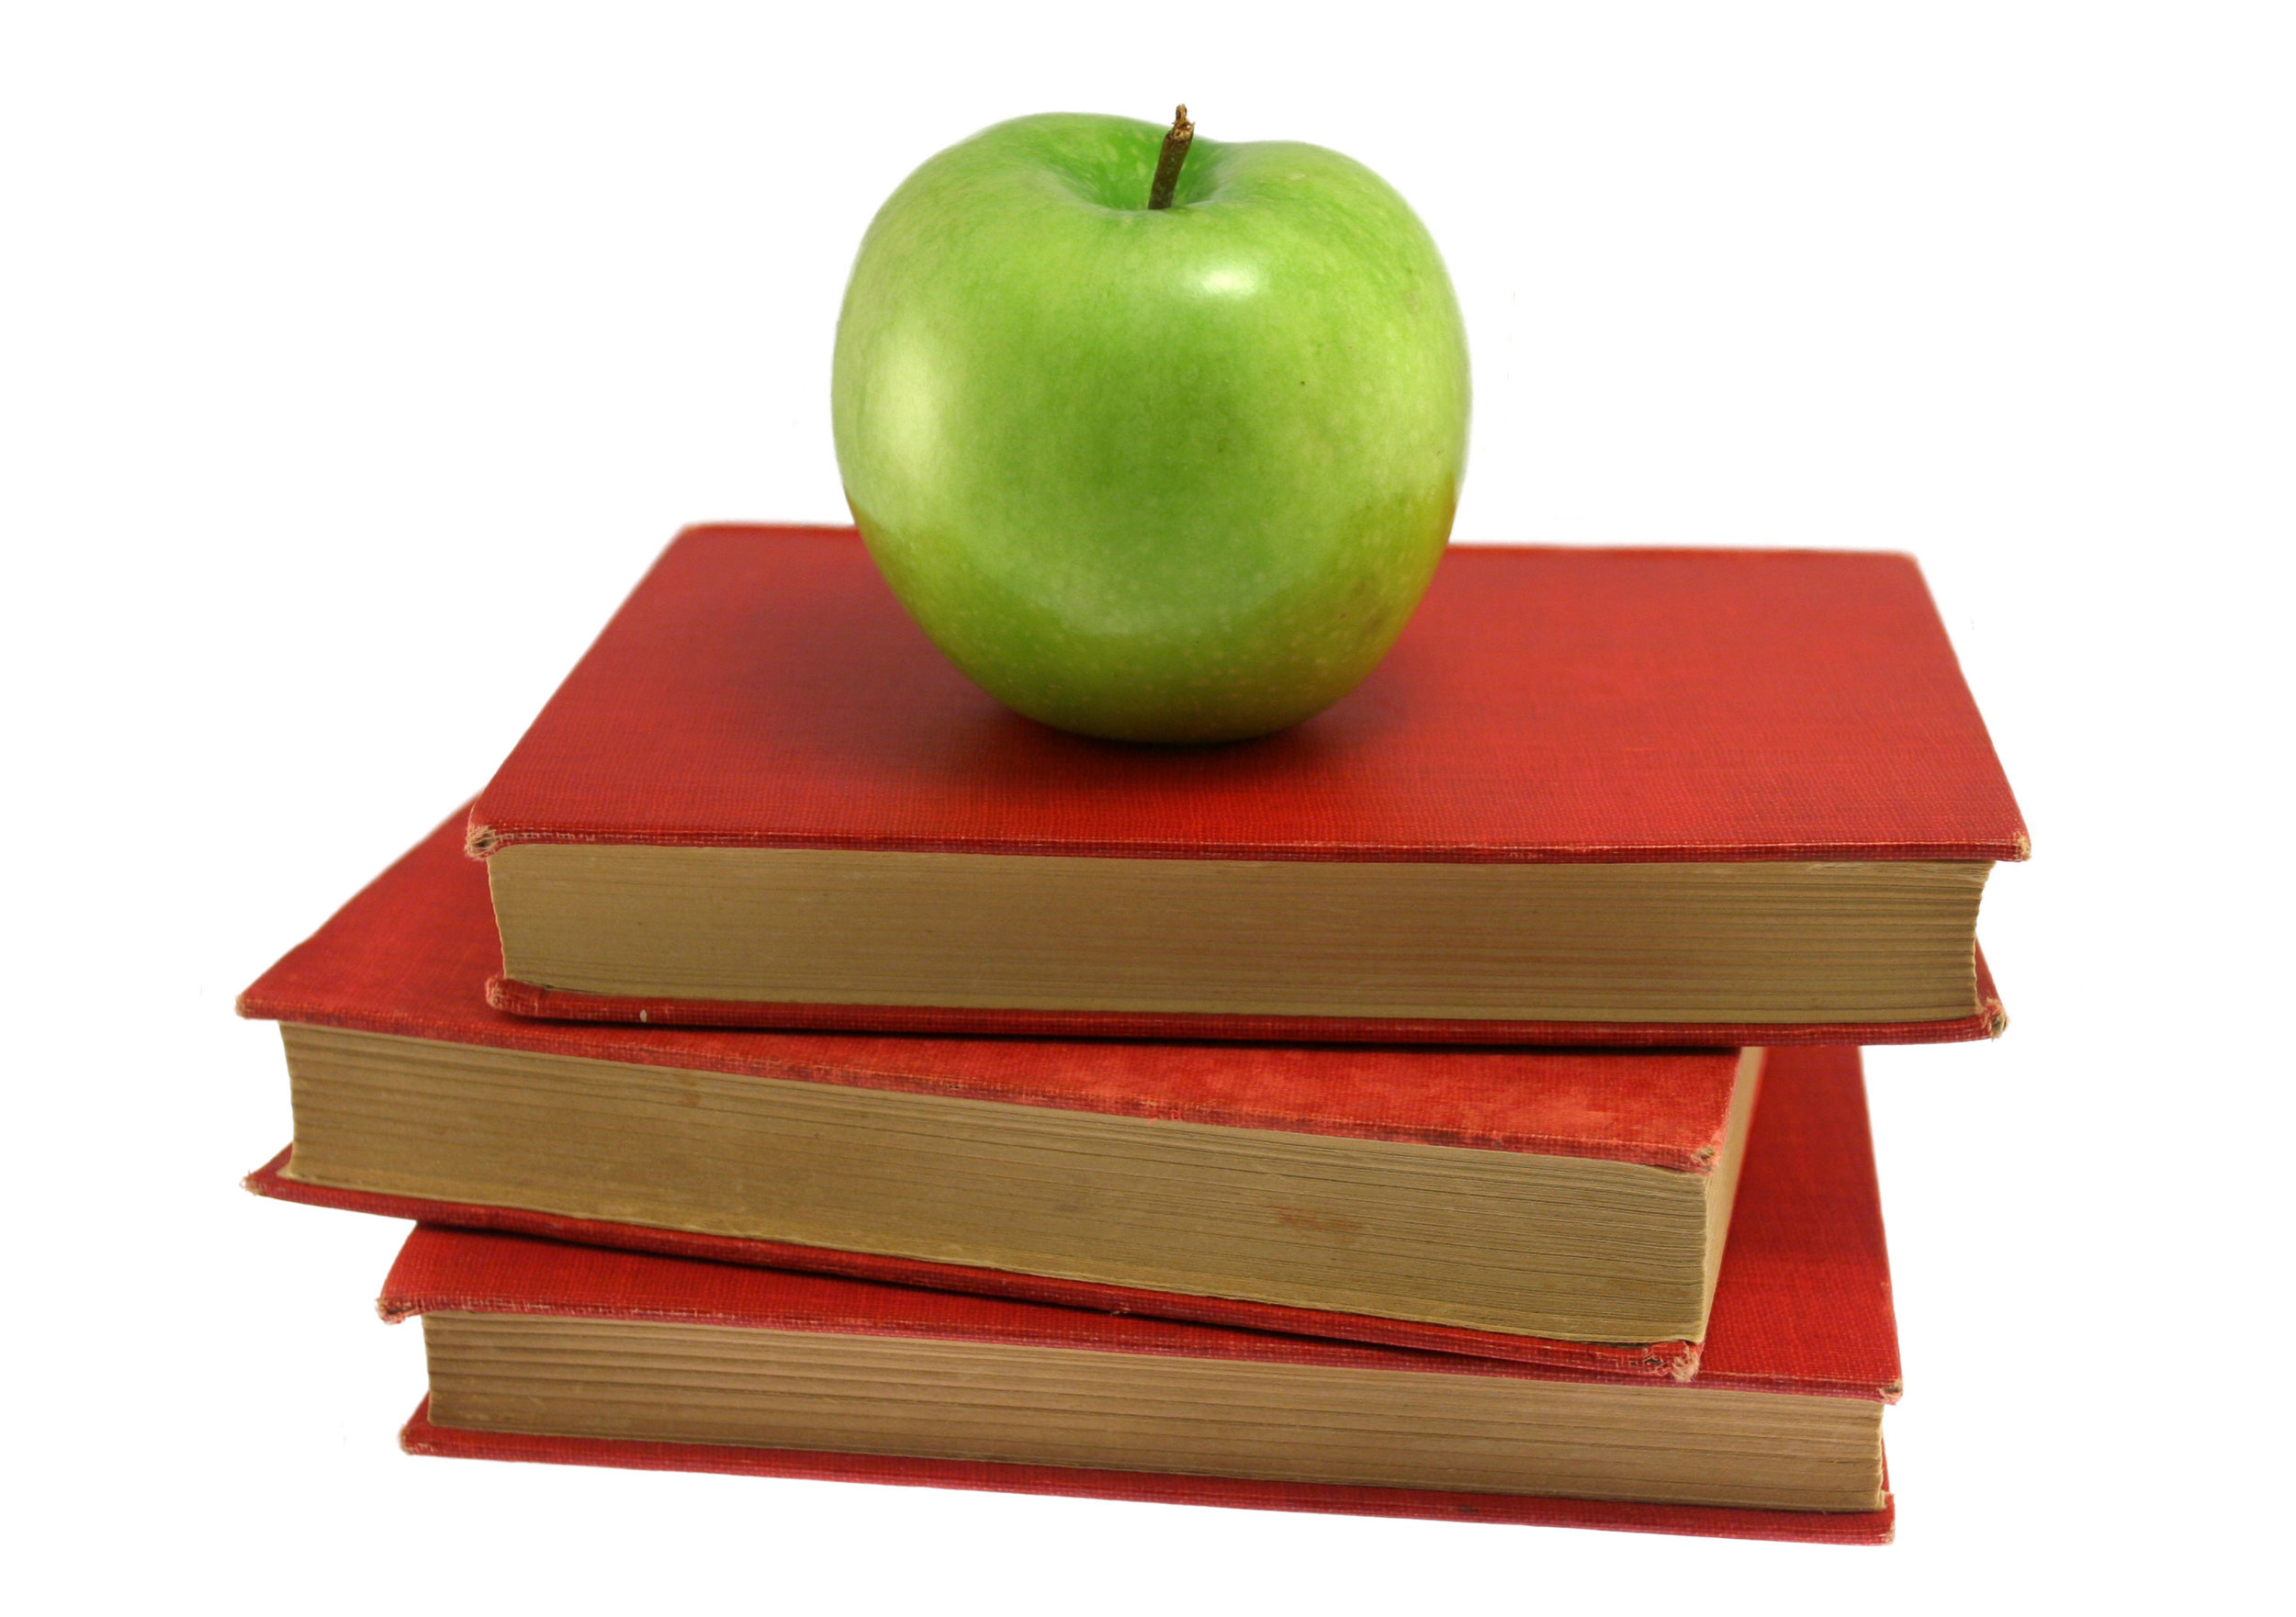 Green apple on stack of red books.